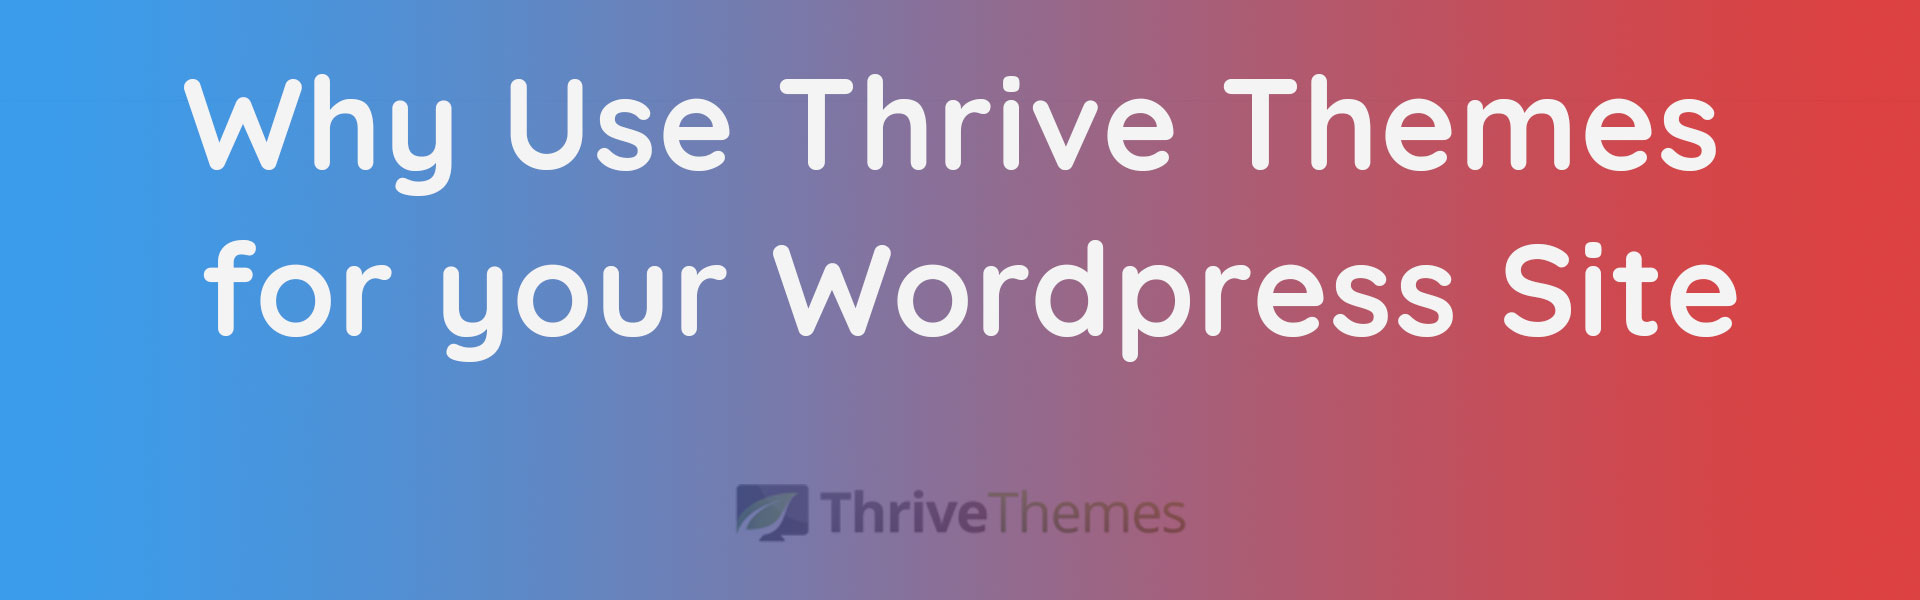 Warranty Service Request Thrive Themes